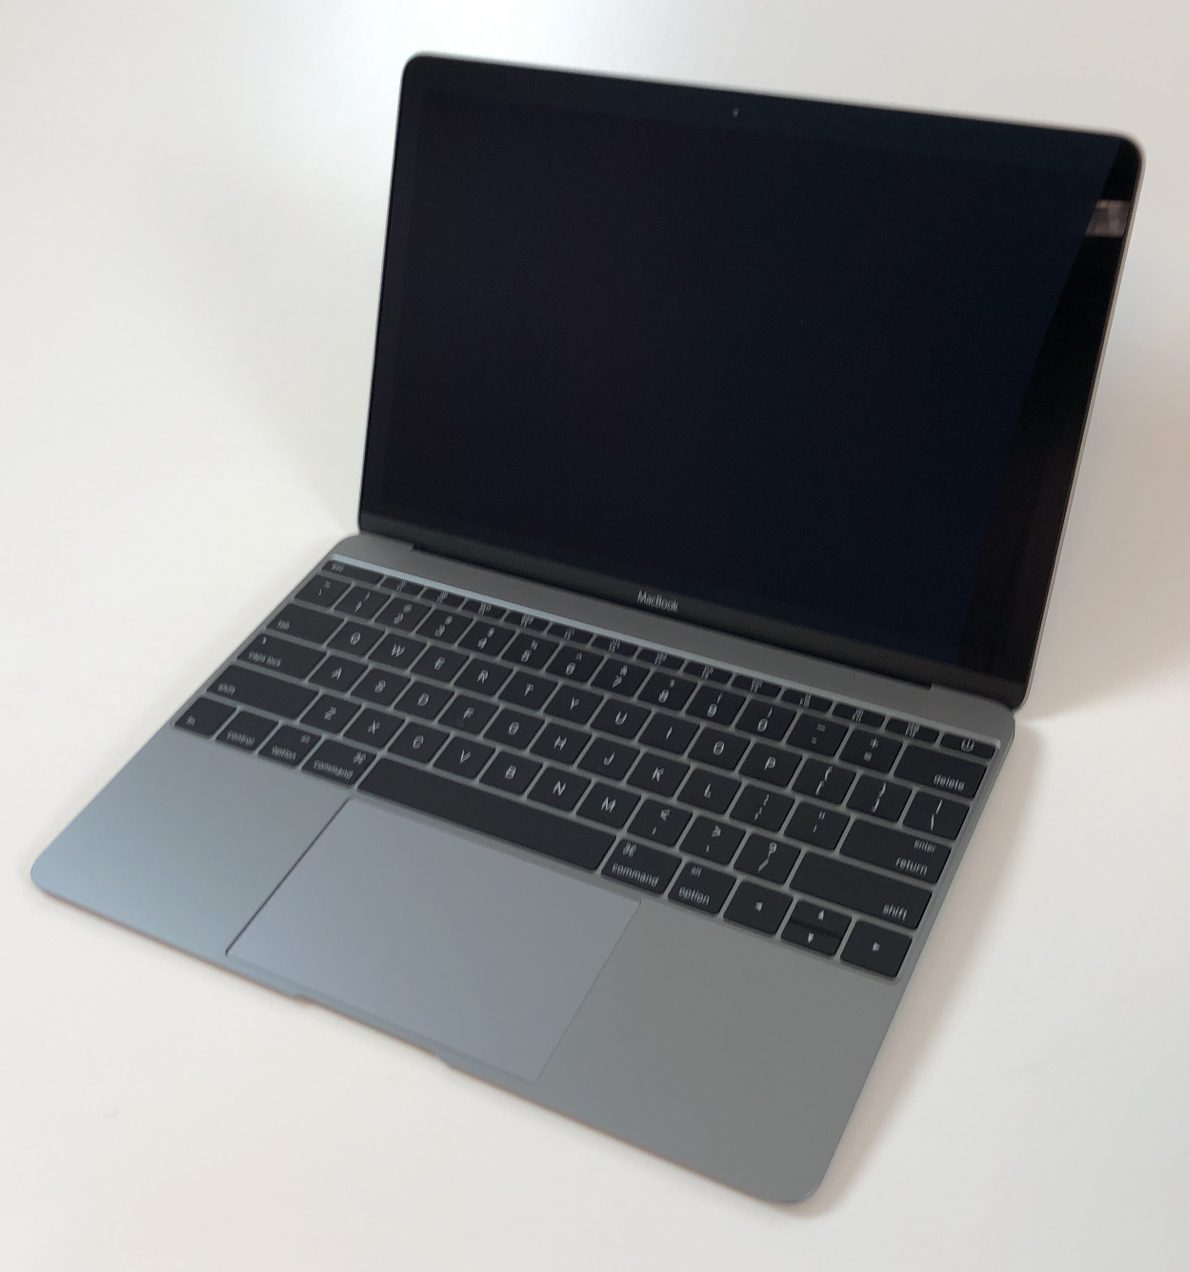 "MacBook 12"" Early 2016 (Intel Core m7 1.3 GHz 8 GB RAM 512 GB SSD), Space Gray, Intel Core m7 1.3 GHz, 8 GB RAM, 512 GB SSD, obraz 1"